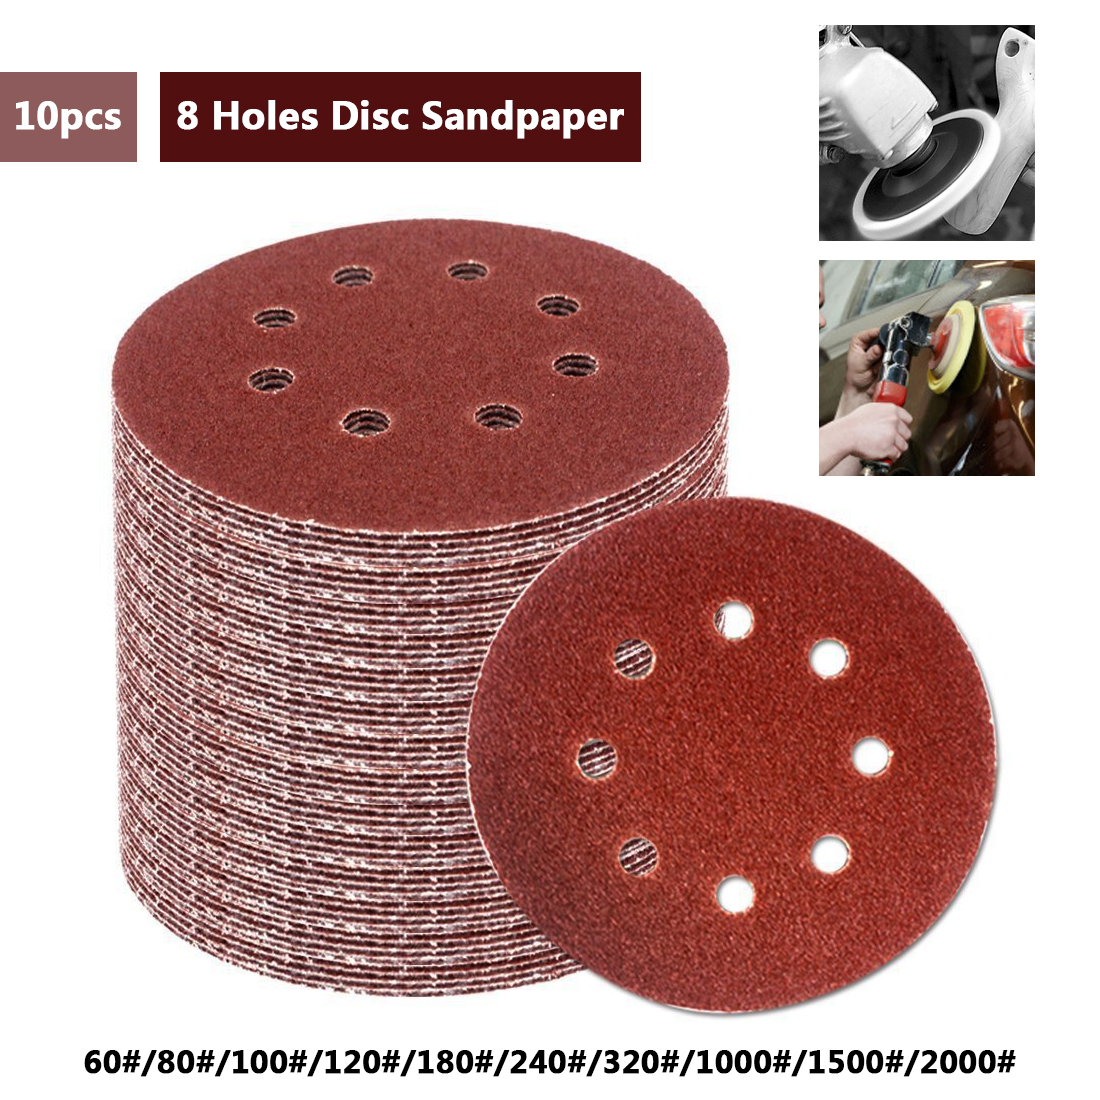 10pcs/set 125mm Round Sandpaper Disk Sand Sheets Grit 60-2000 Hook And Loop Sanding Disc For Sander Grits